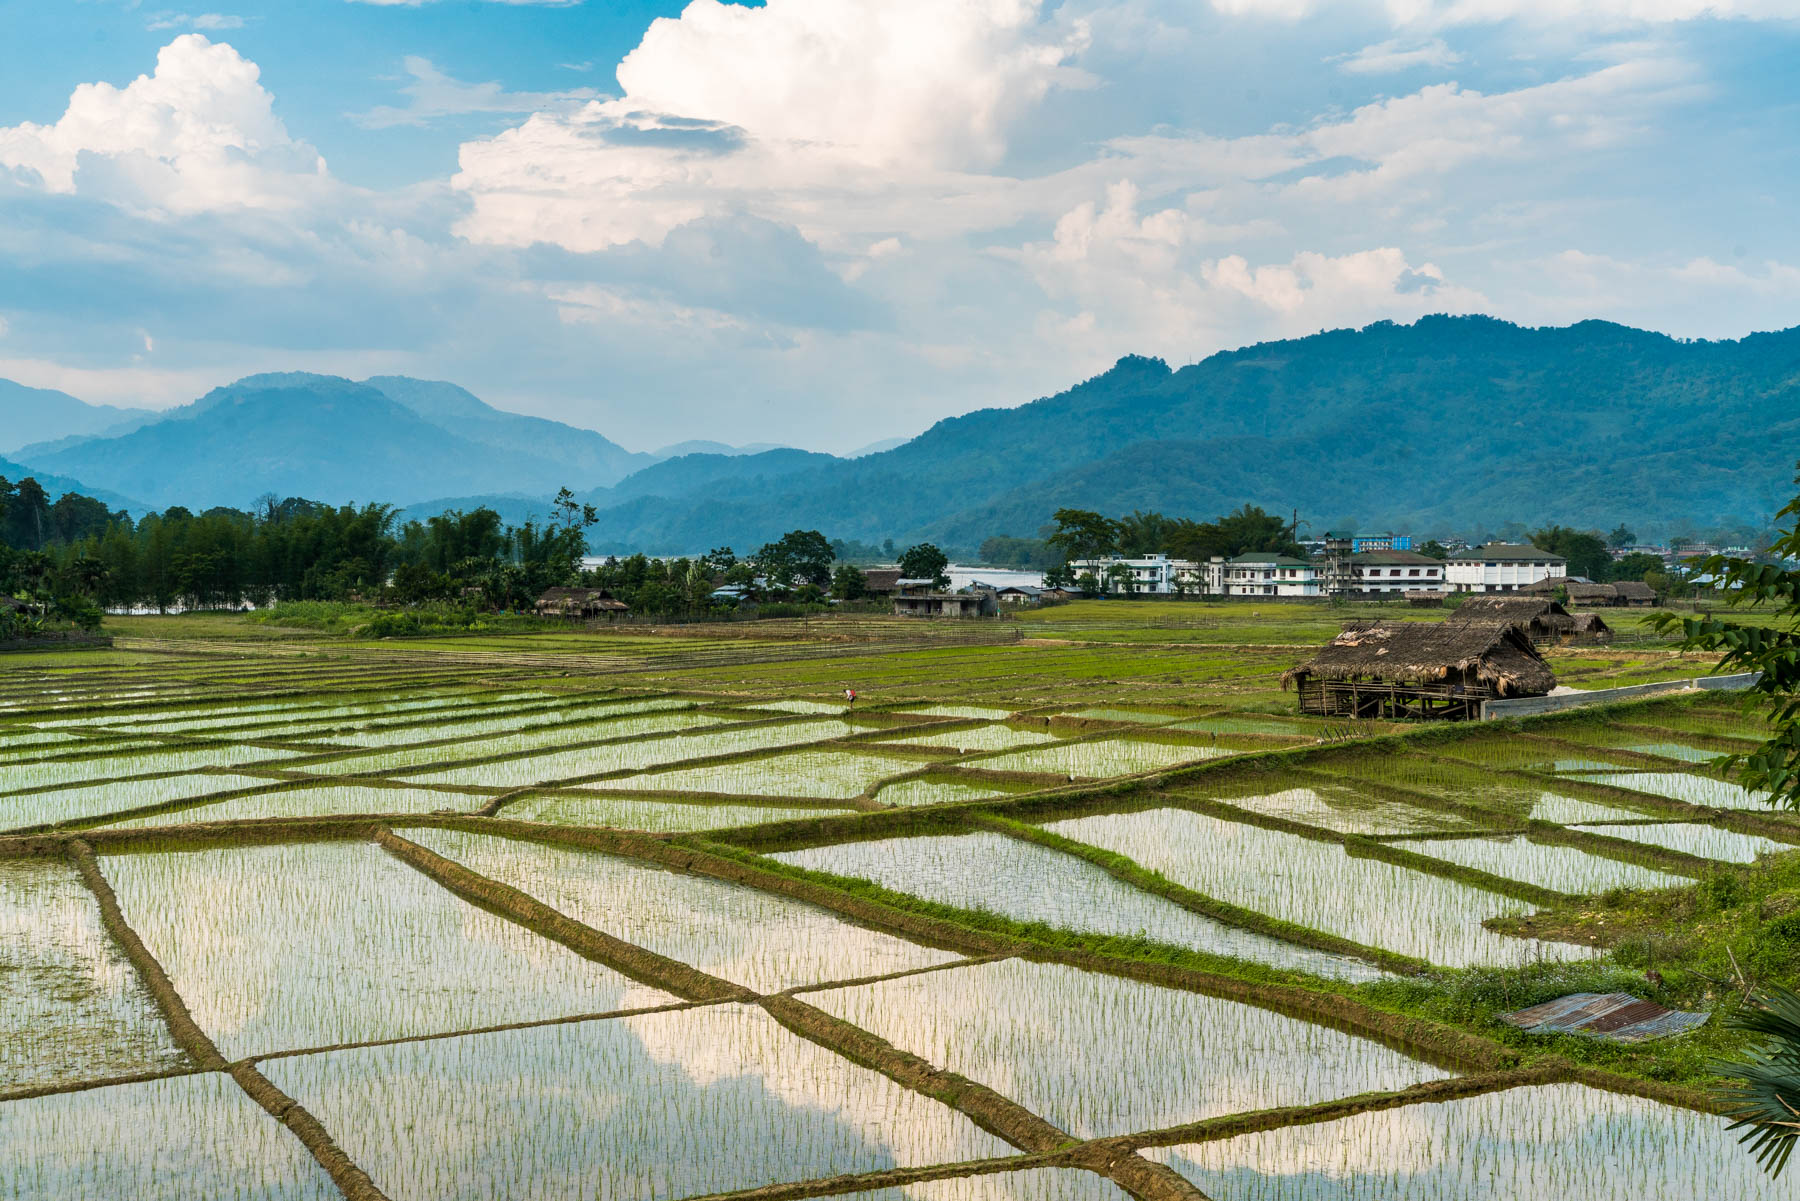 A backpacker guide to Arunachal Pradesh, India - Sunset over the rice fields of Along - Lost With Purpose